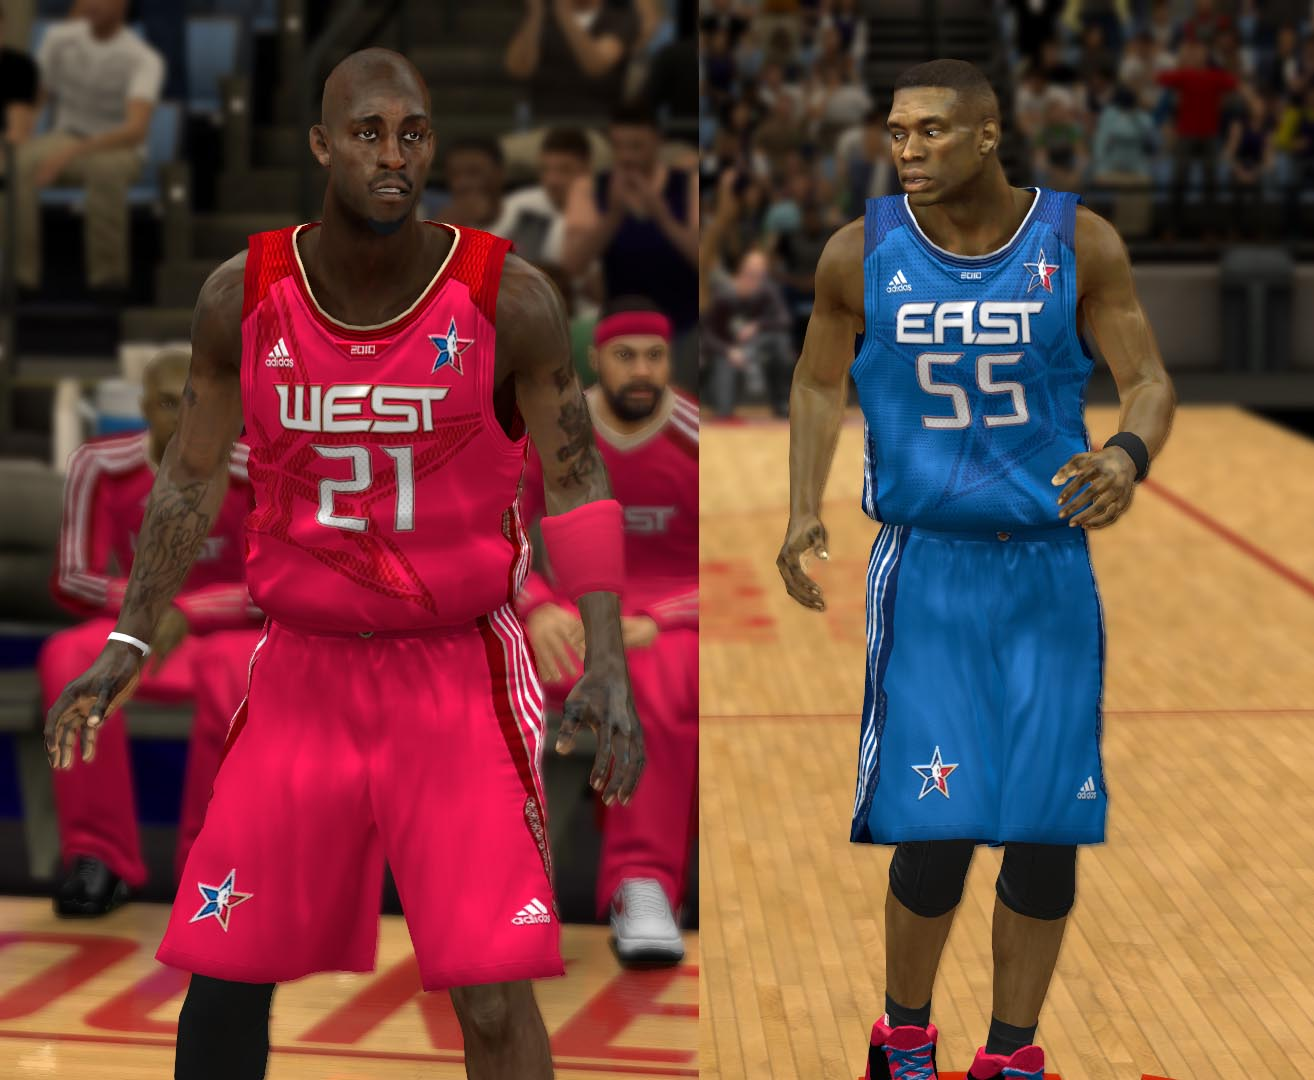 2010 All-Star Jerseys 2K13